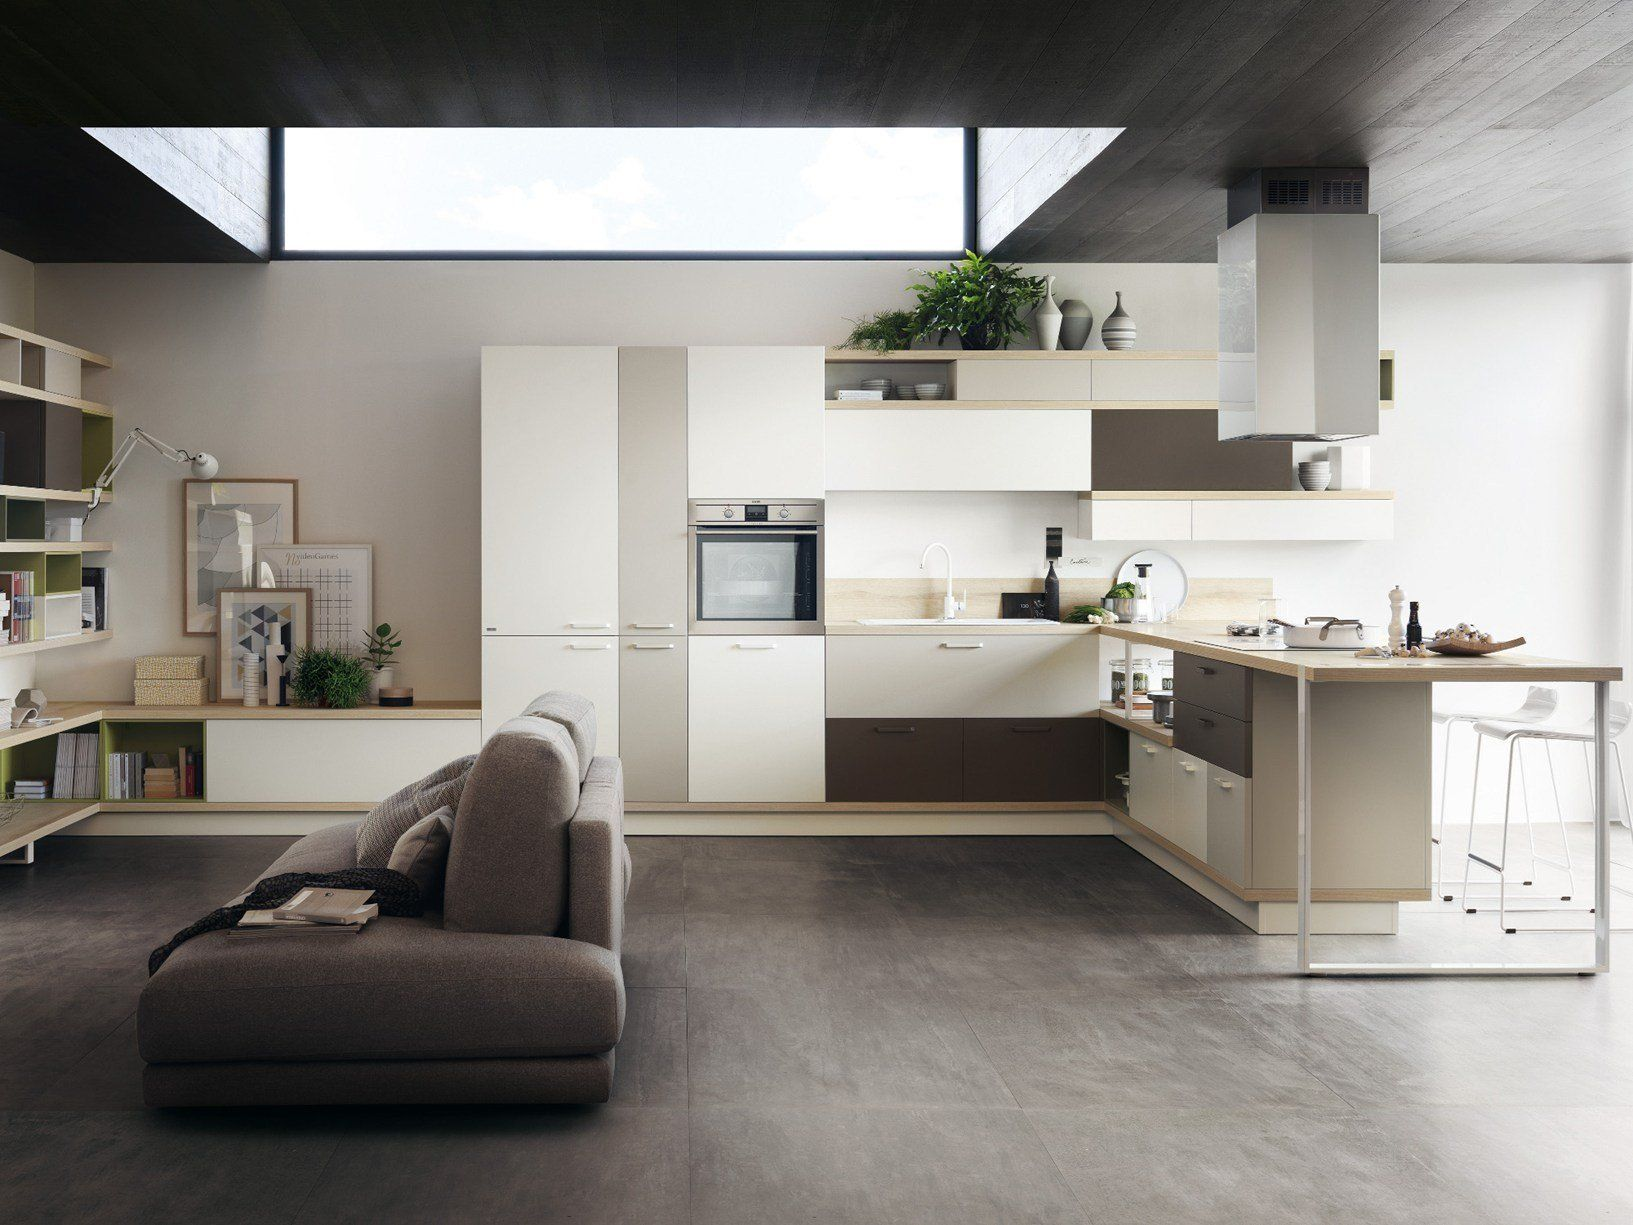 Scavolini awarded the special mention label at the german design award 2017 - Cucine scavolini 2017 ...